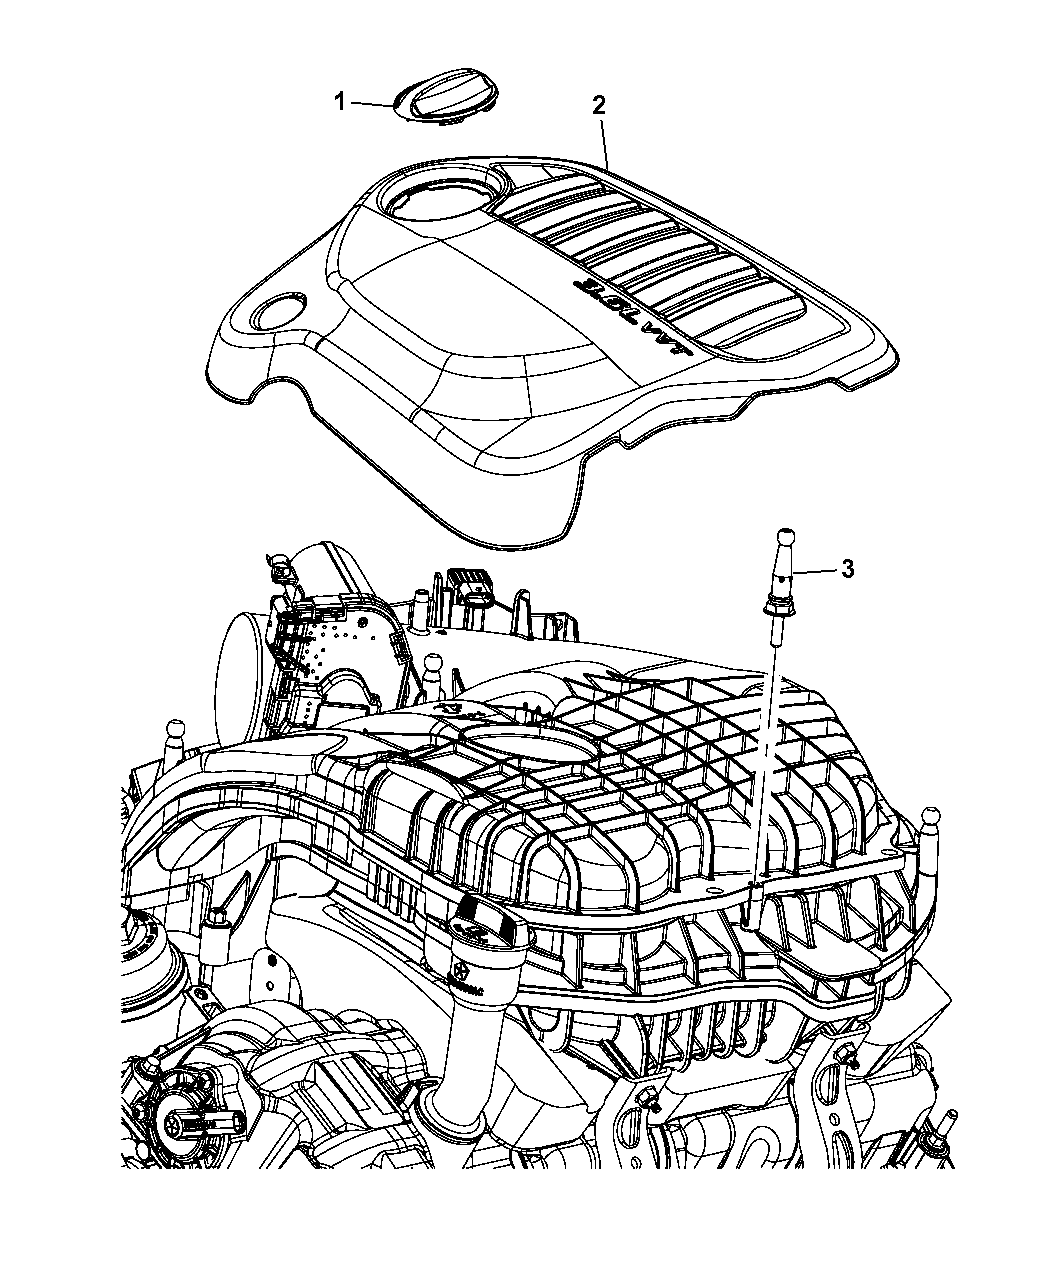 2012 Dodge Journey Engine Cover & Related Parts - Thumbnail 1